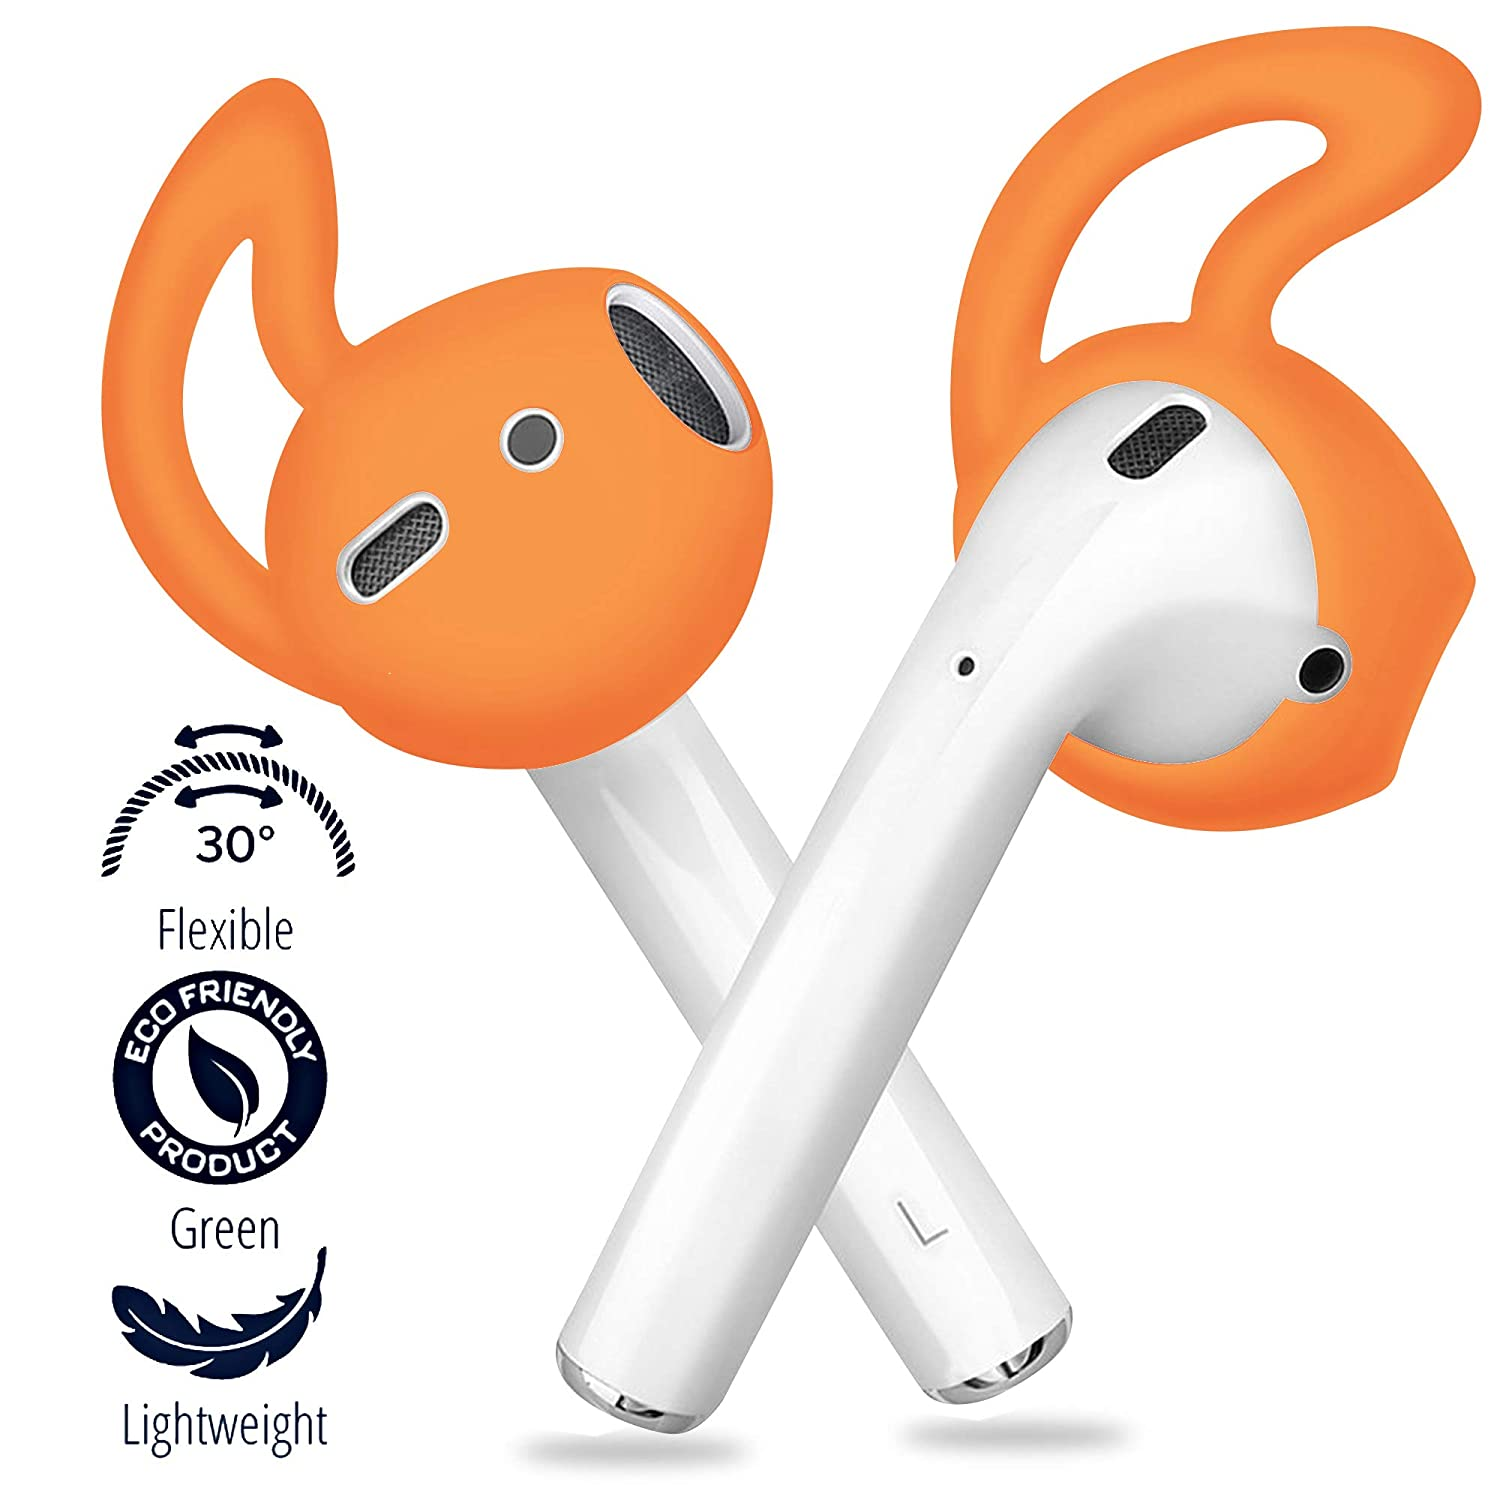 White 2 Pairs FONY Apple Airpods Ear Hooks and Covers Anti-Slip Silicone Accessories Compatible with AirPods 1//2 or EarPods Headphones//Earbuds//Earphones